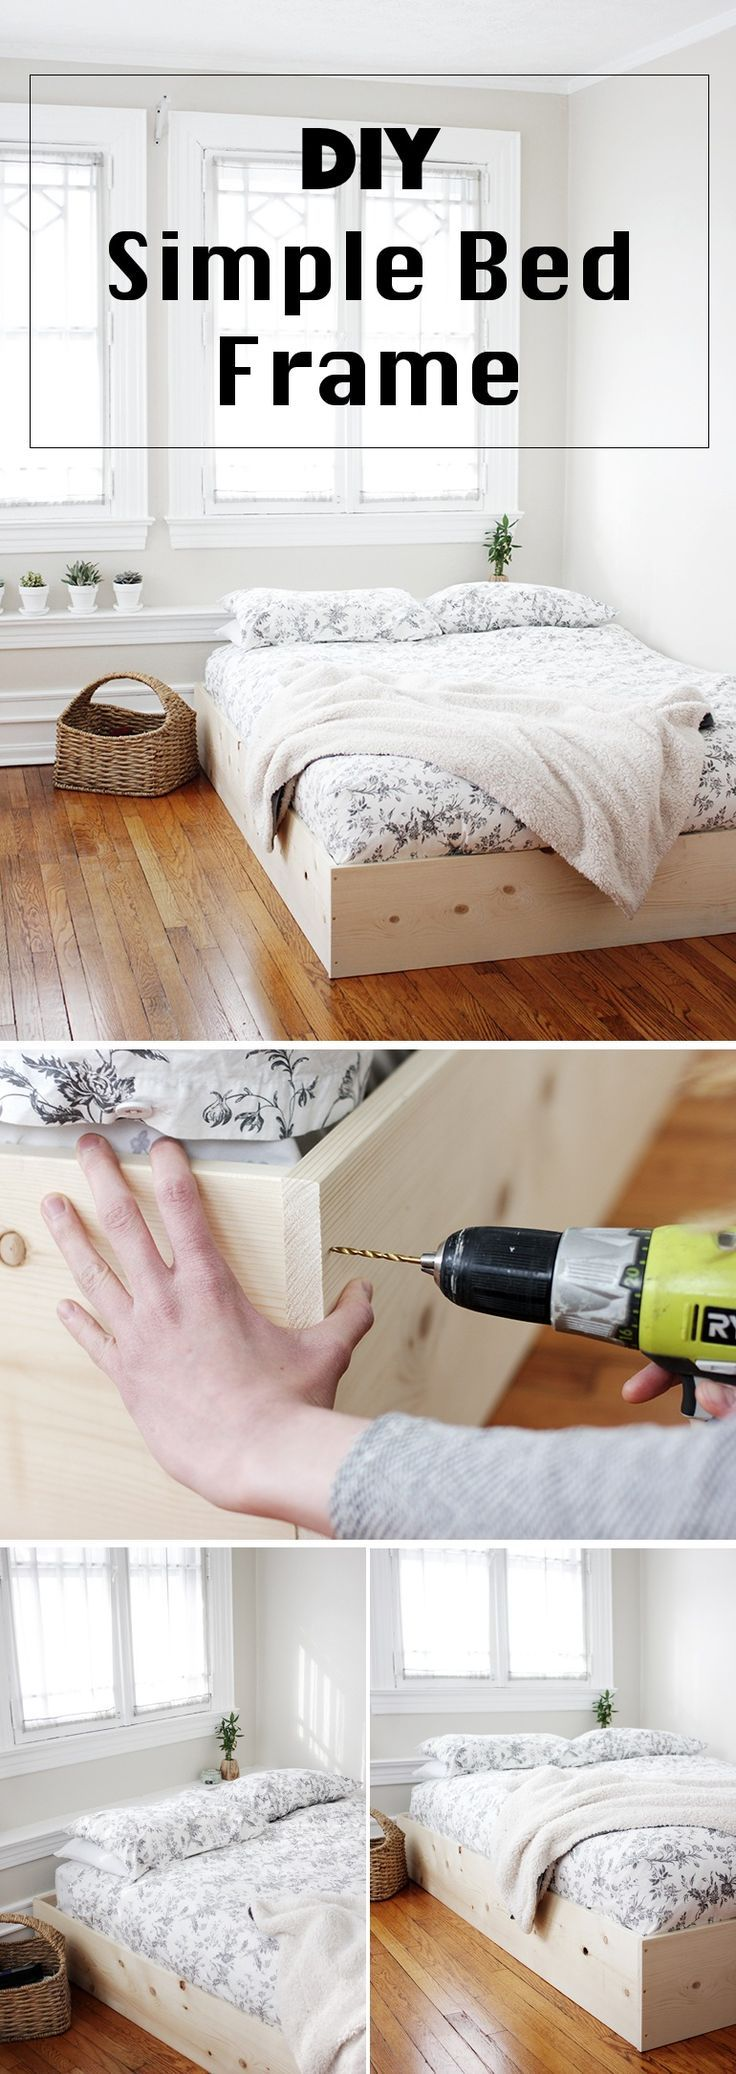 36 Easy DIY Bed Frame Projects to Upgrade Your Bedroom | DIY ...